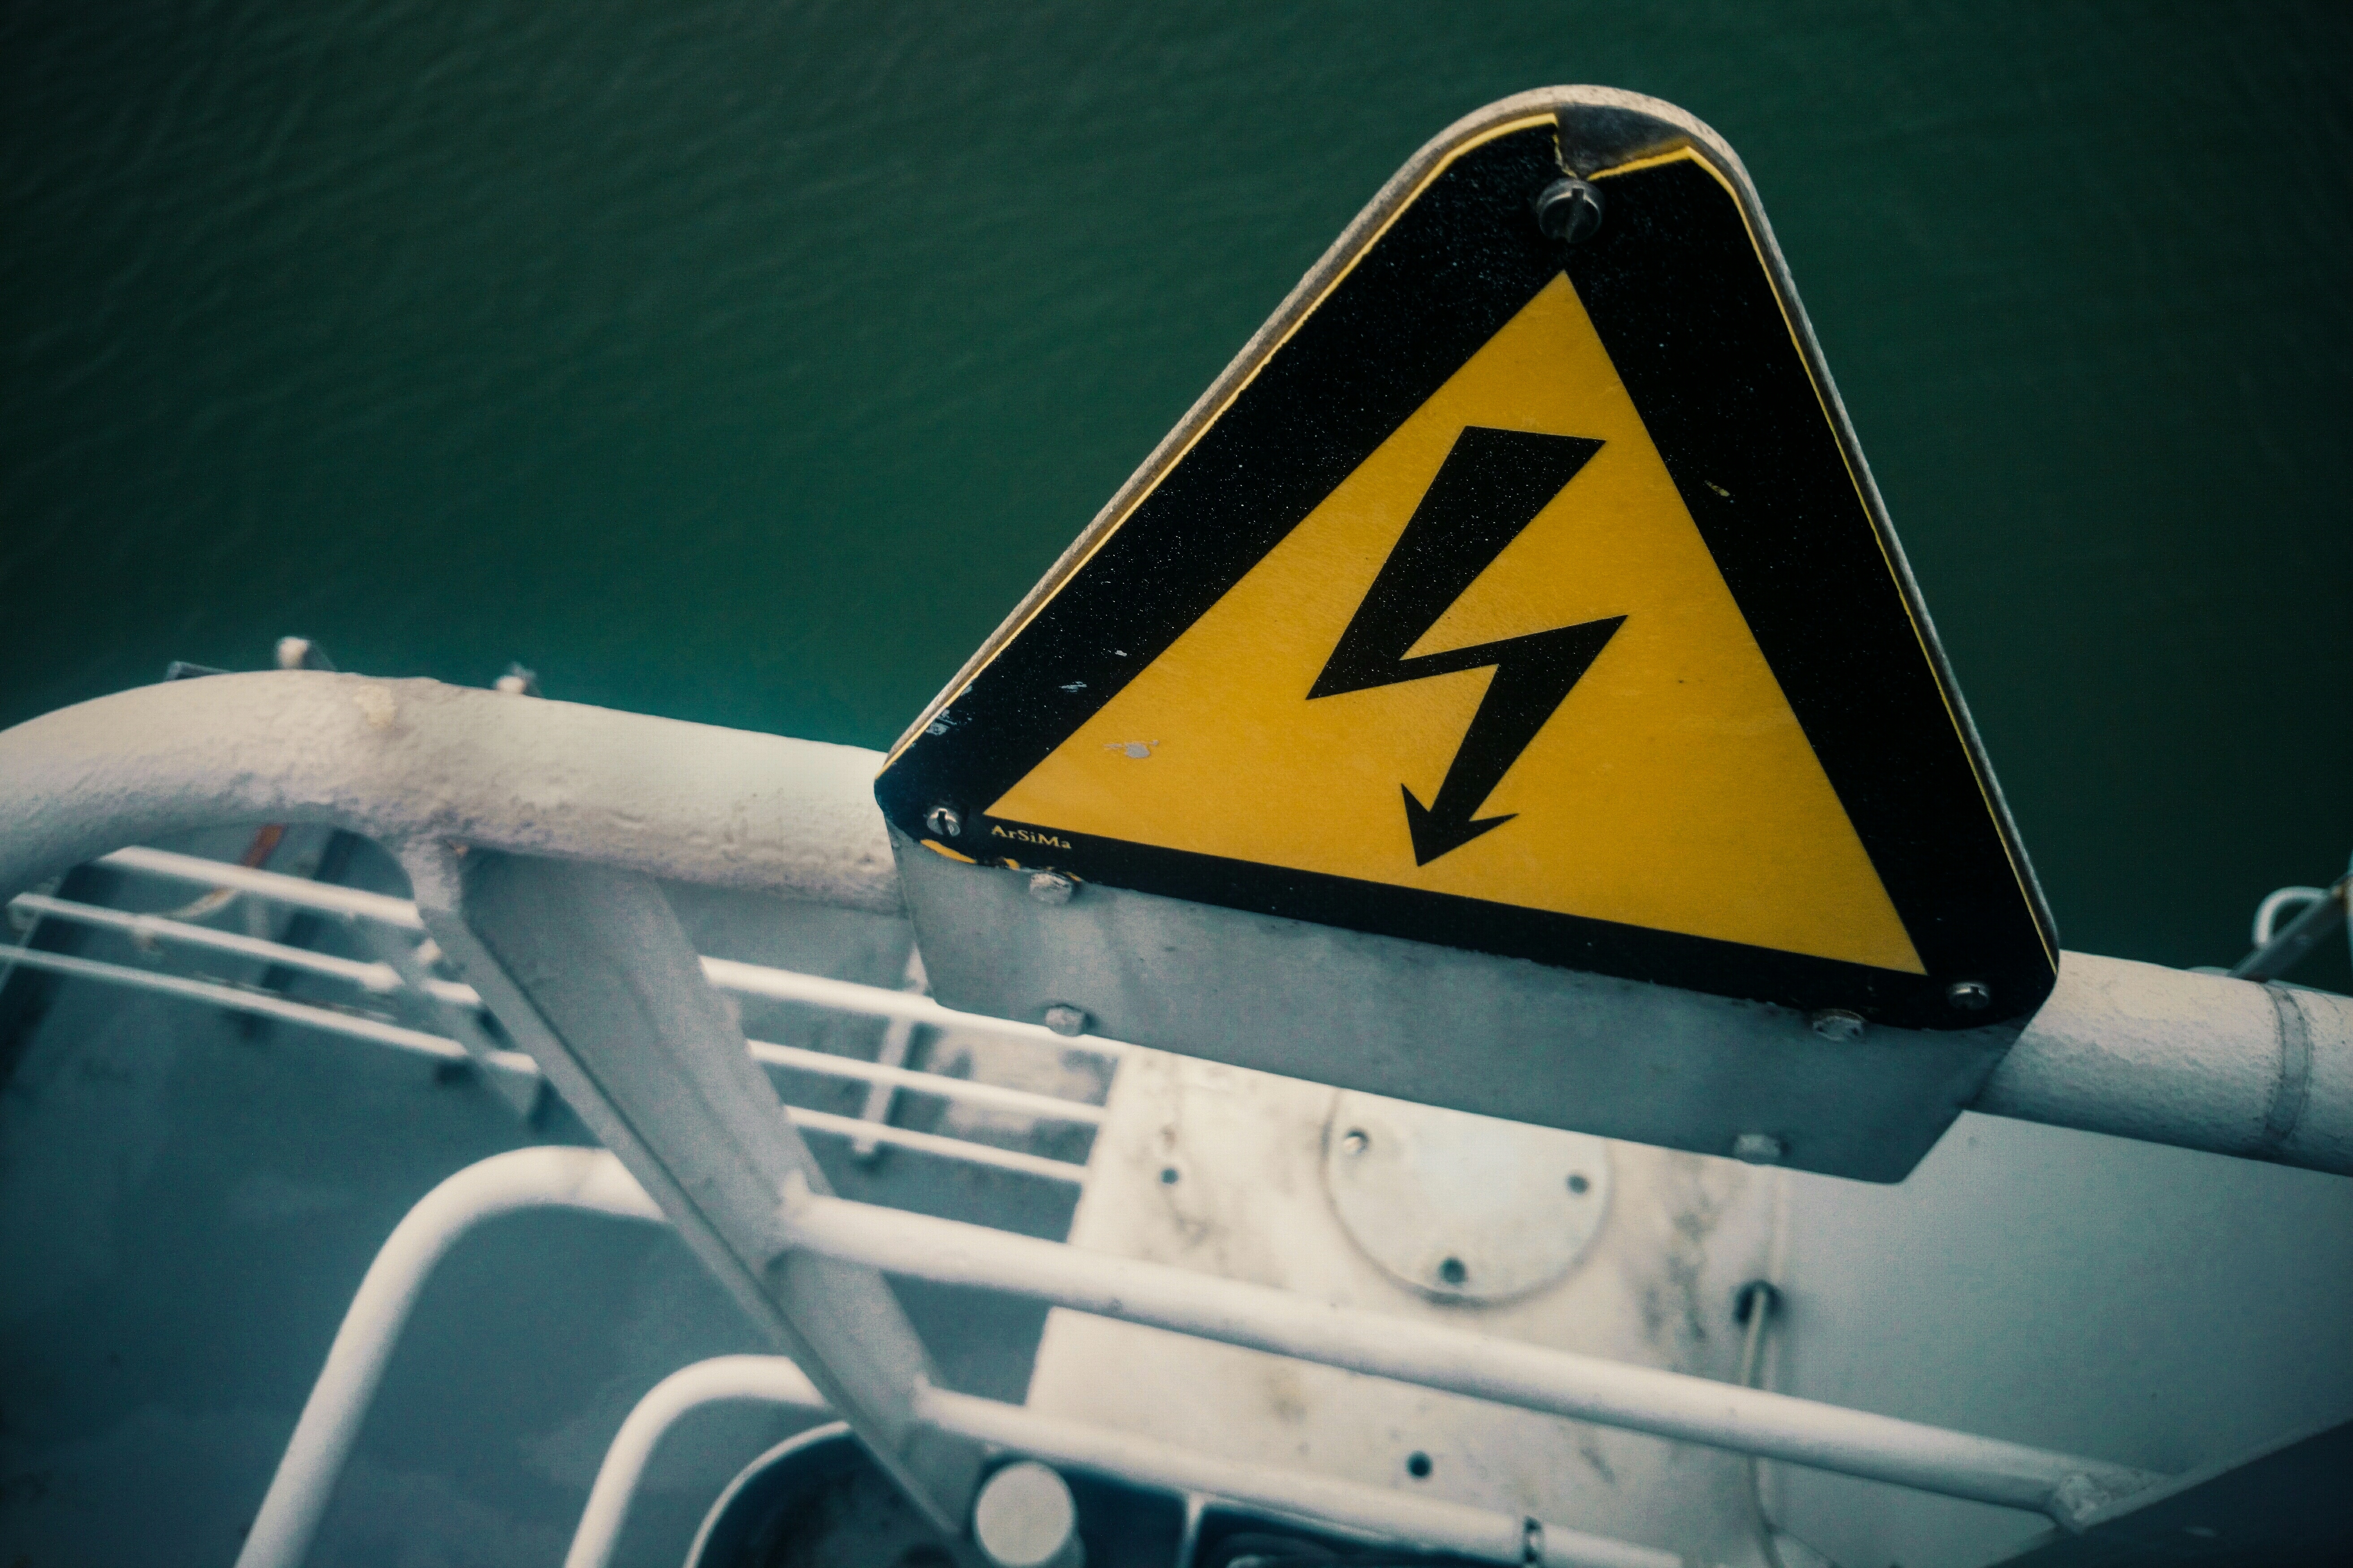 An 11-year-old girl was electrocuted in a lagoon in New Jersey.